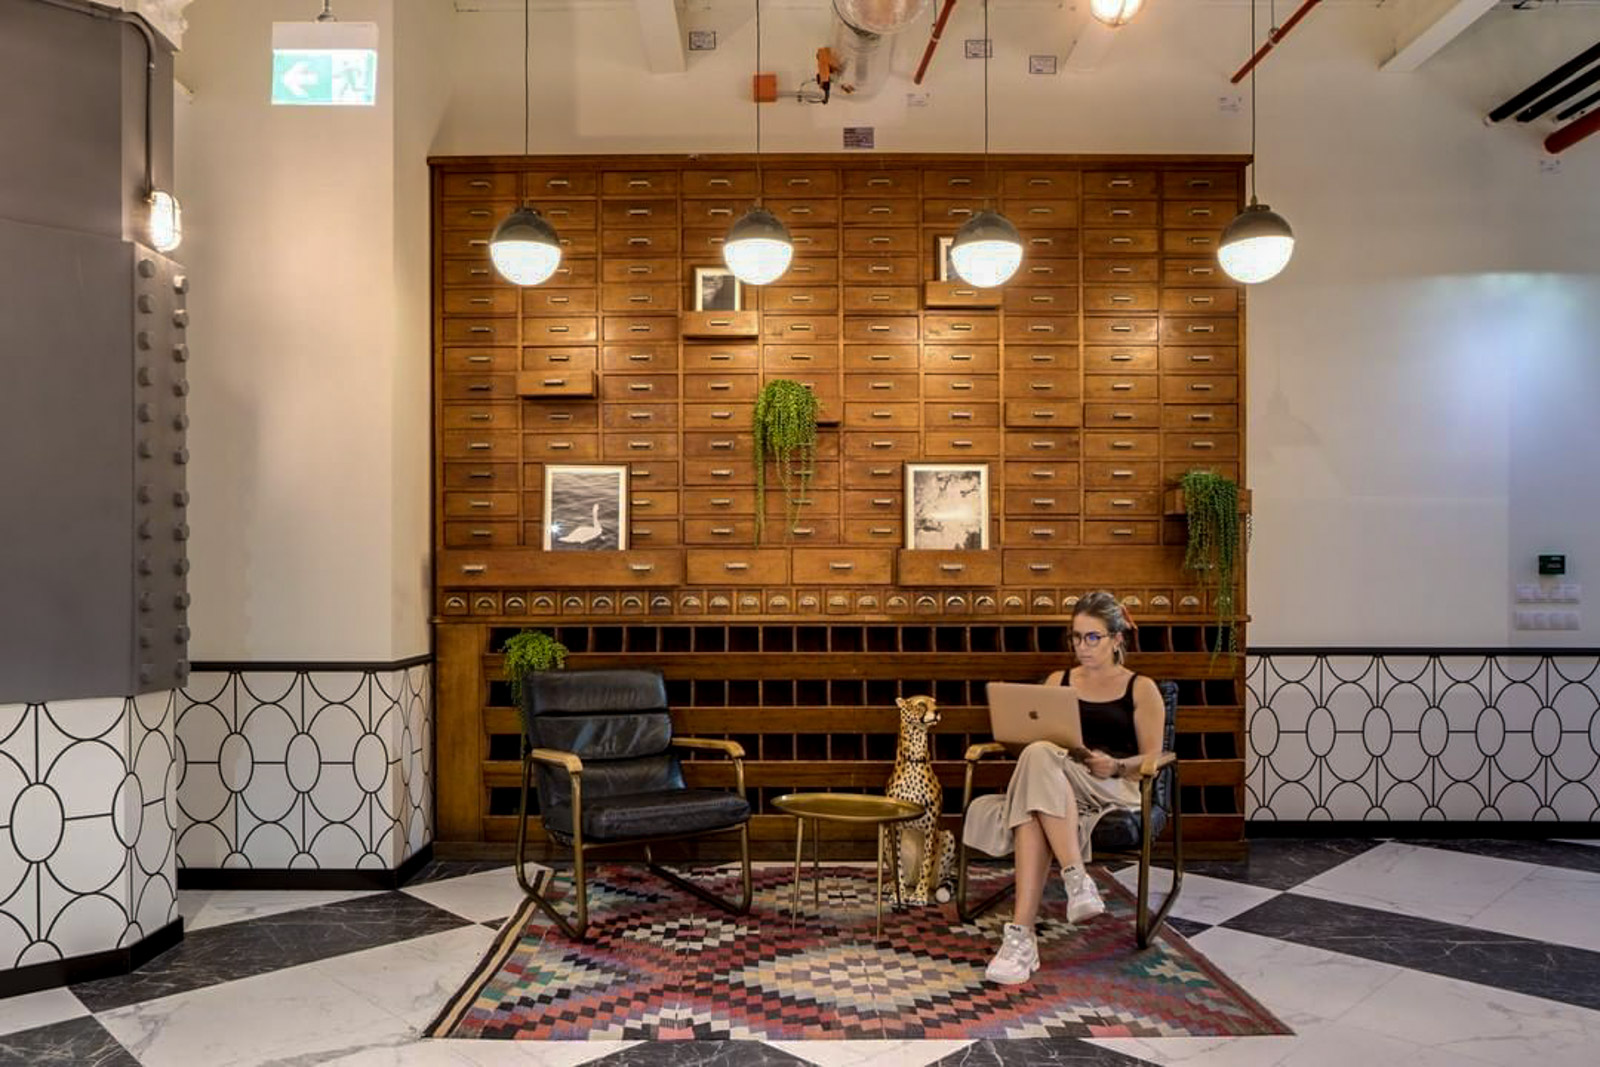 Our Decorative Lights Brighten Mindspace Coworking Offices Globally